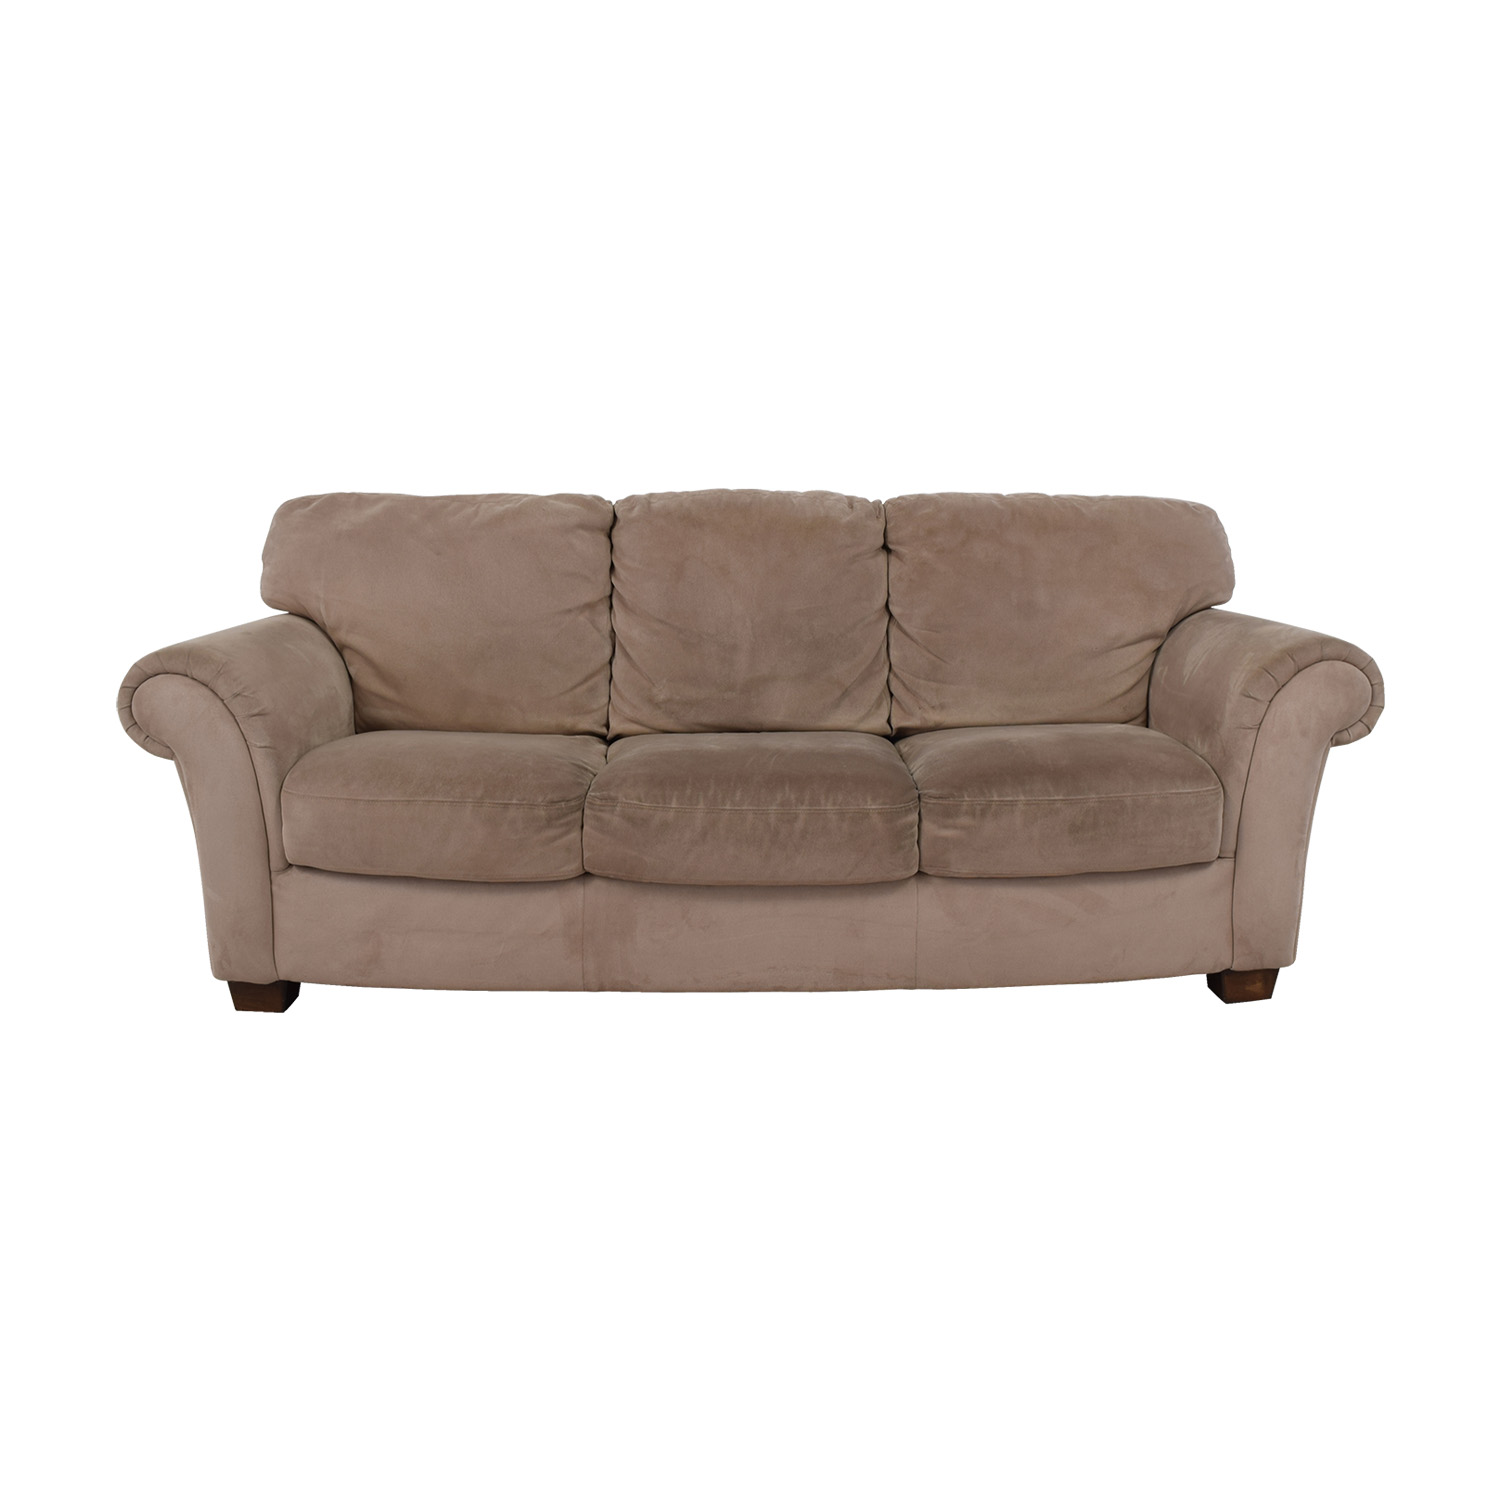 shop Macys Tan Three-Cushion Sofa Macys Classic Sofas